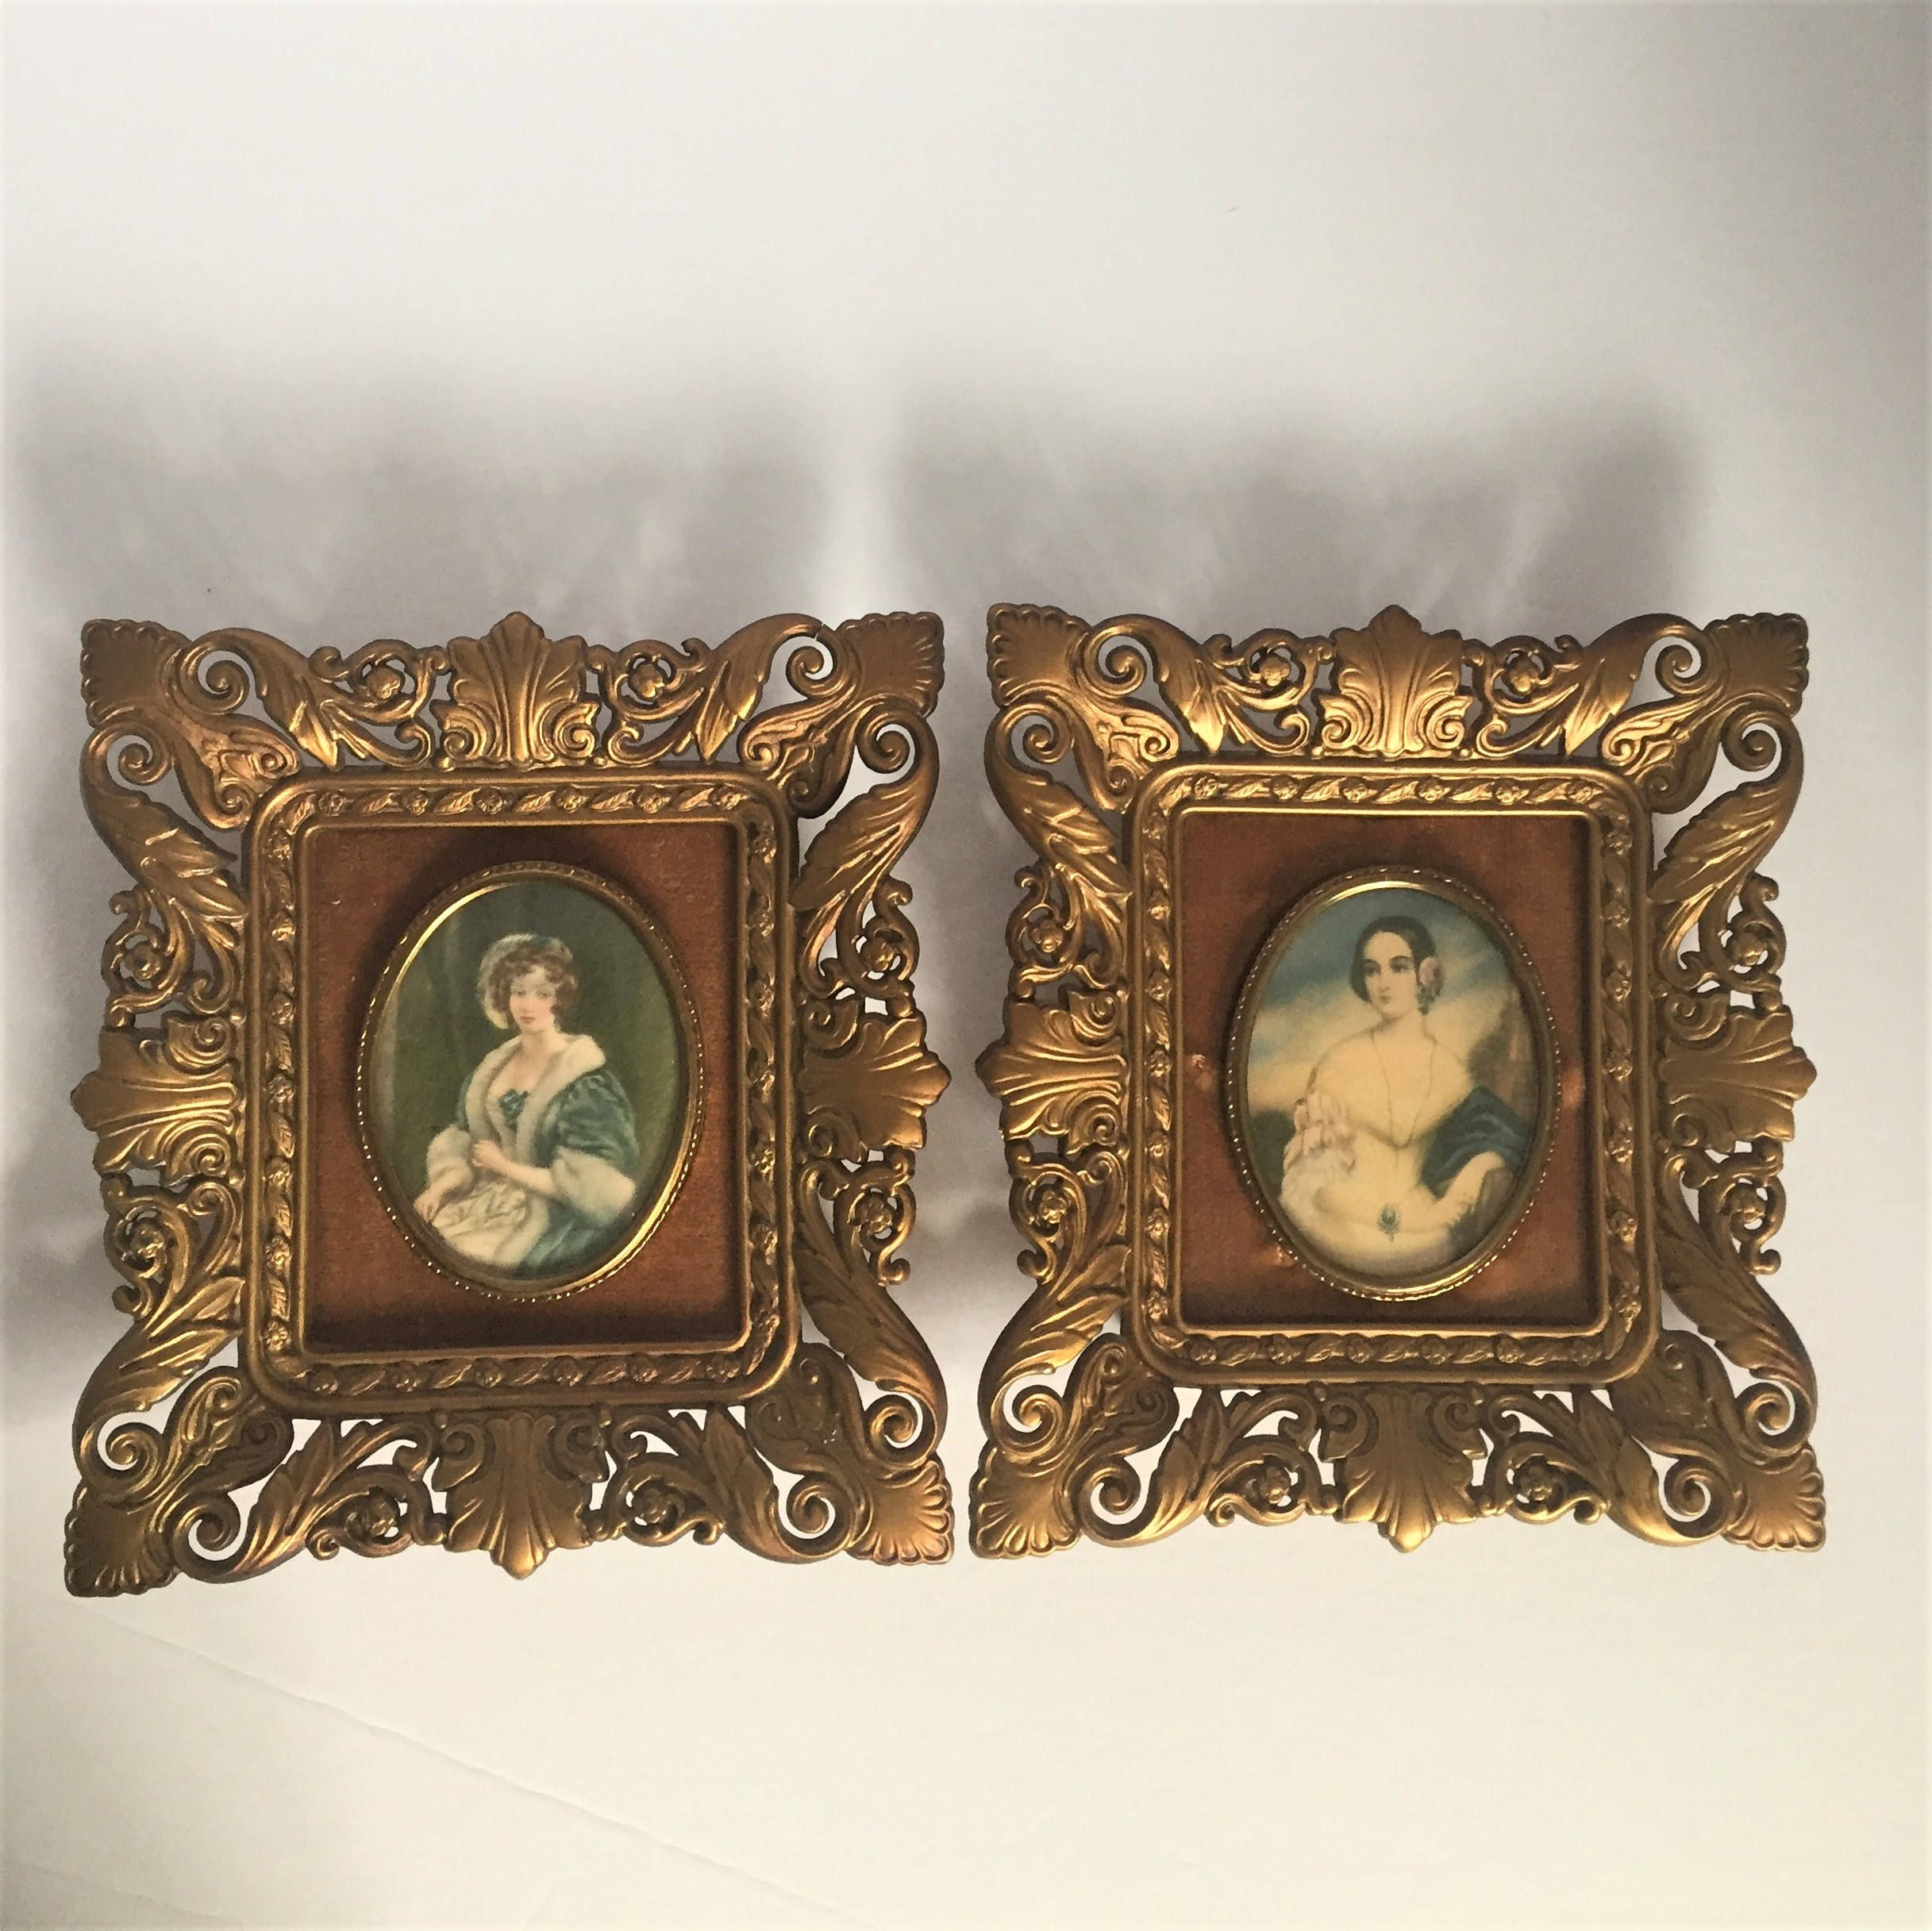 vintage cameo wall decor ladies portrait framed gold ornate wall decor vintage decorative 1800s portraits Cameo & vintage cameo wall decor ladies portrait framed gold ornate wall ...